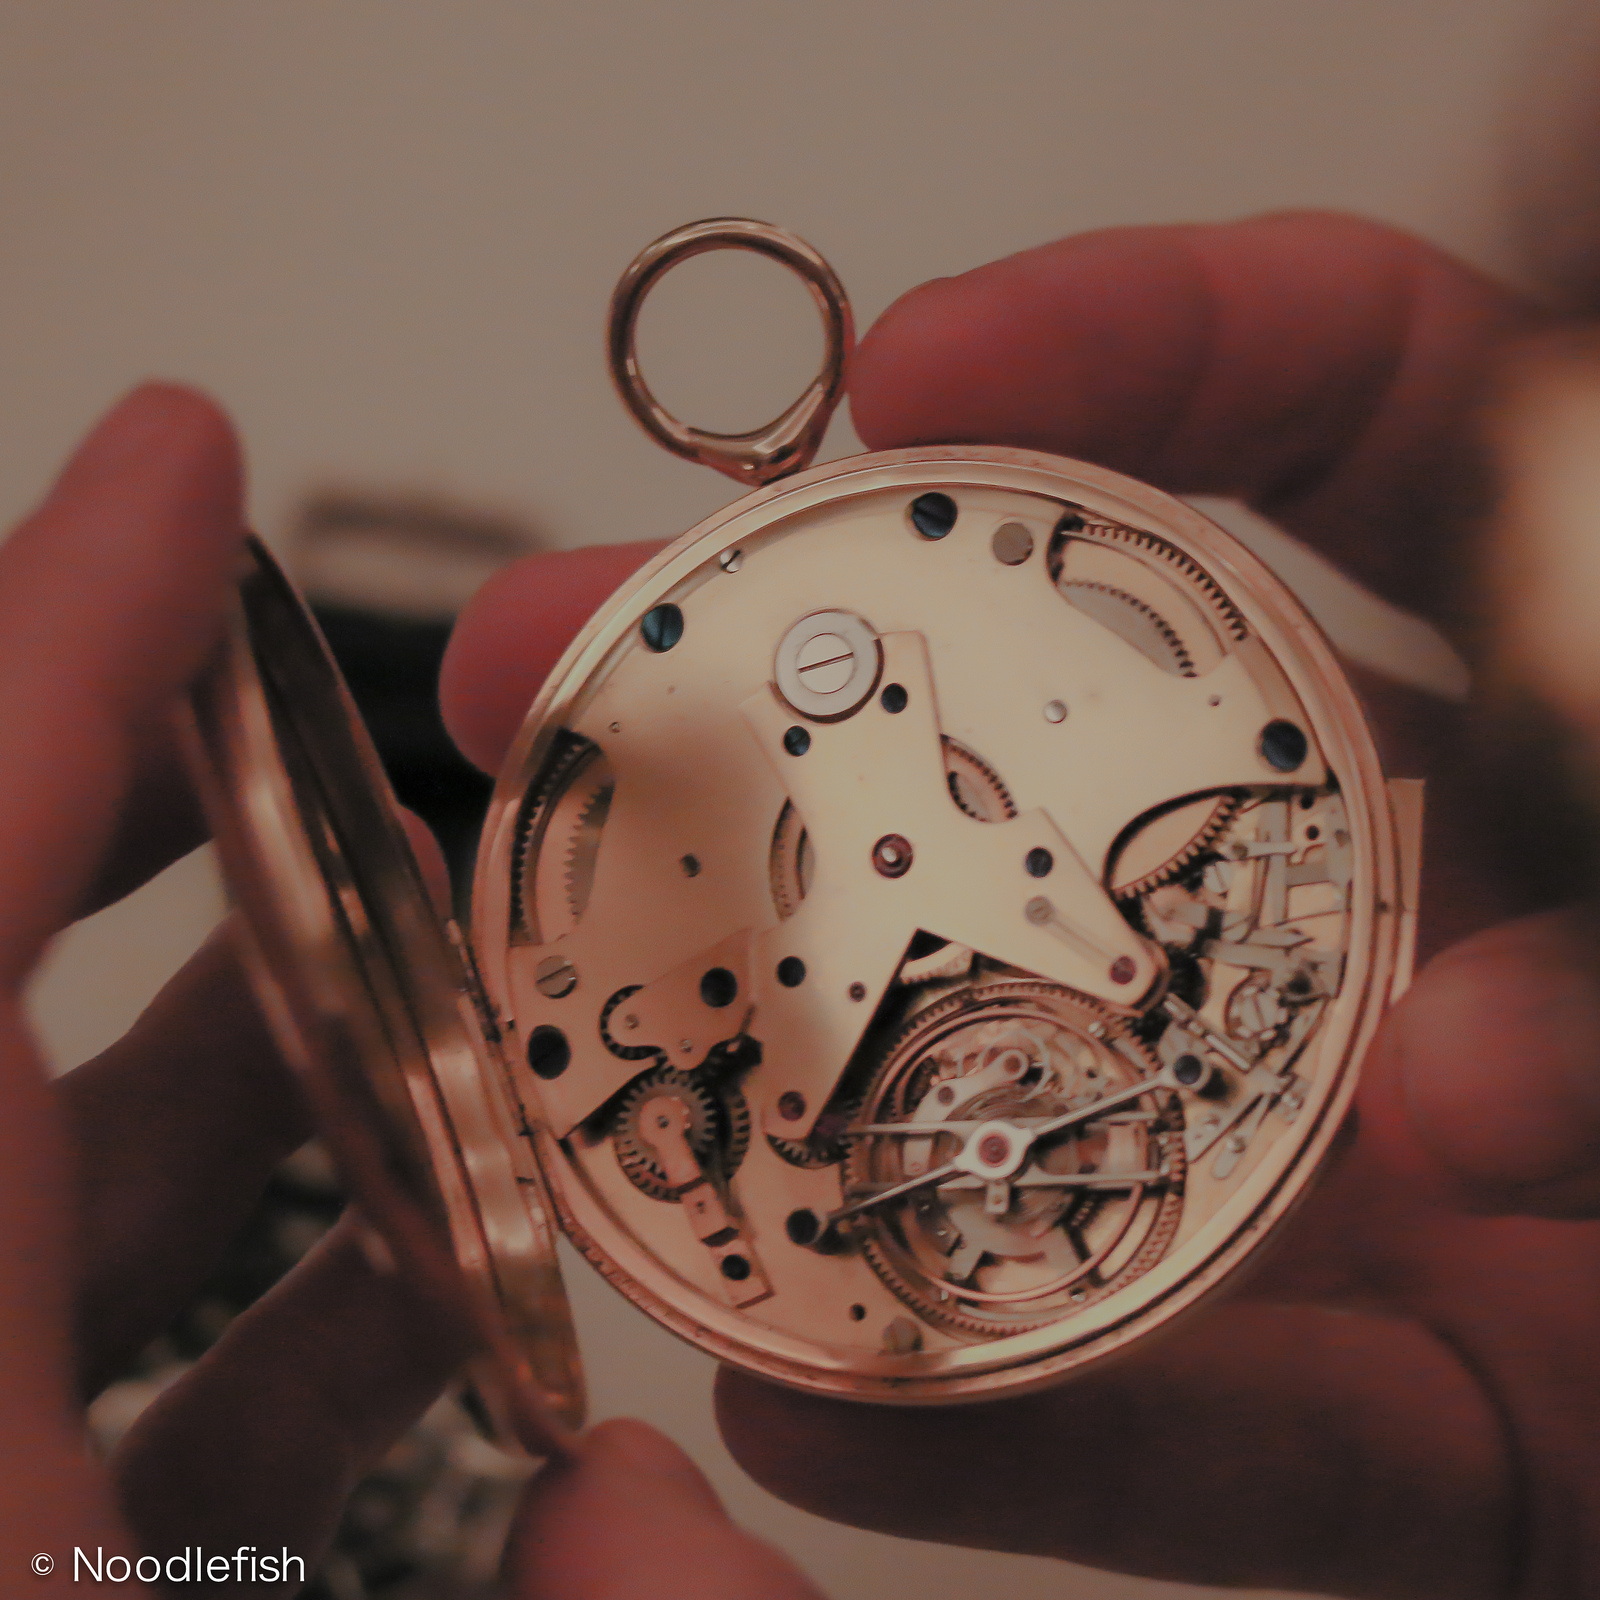 Four-Minute Tourbillon